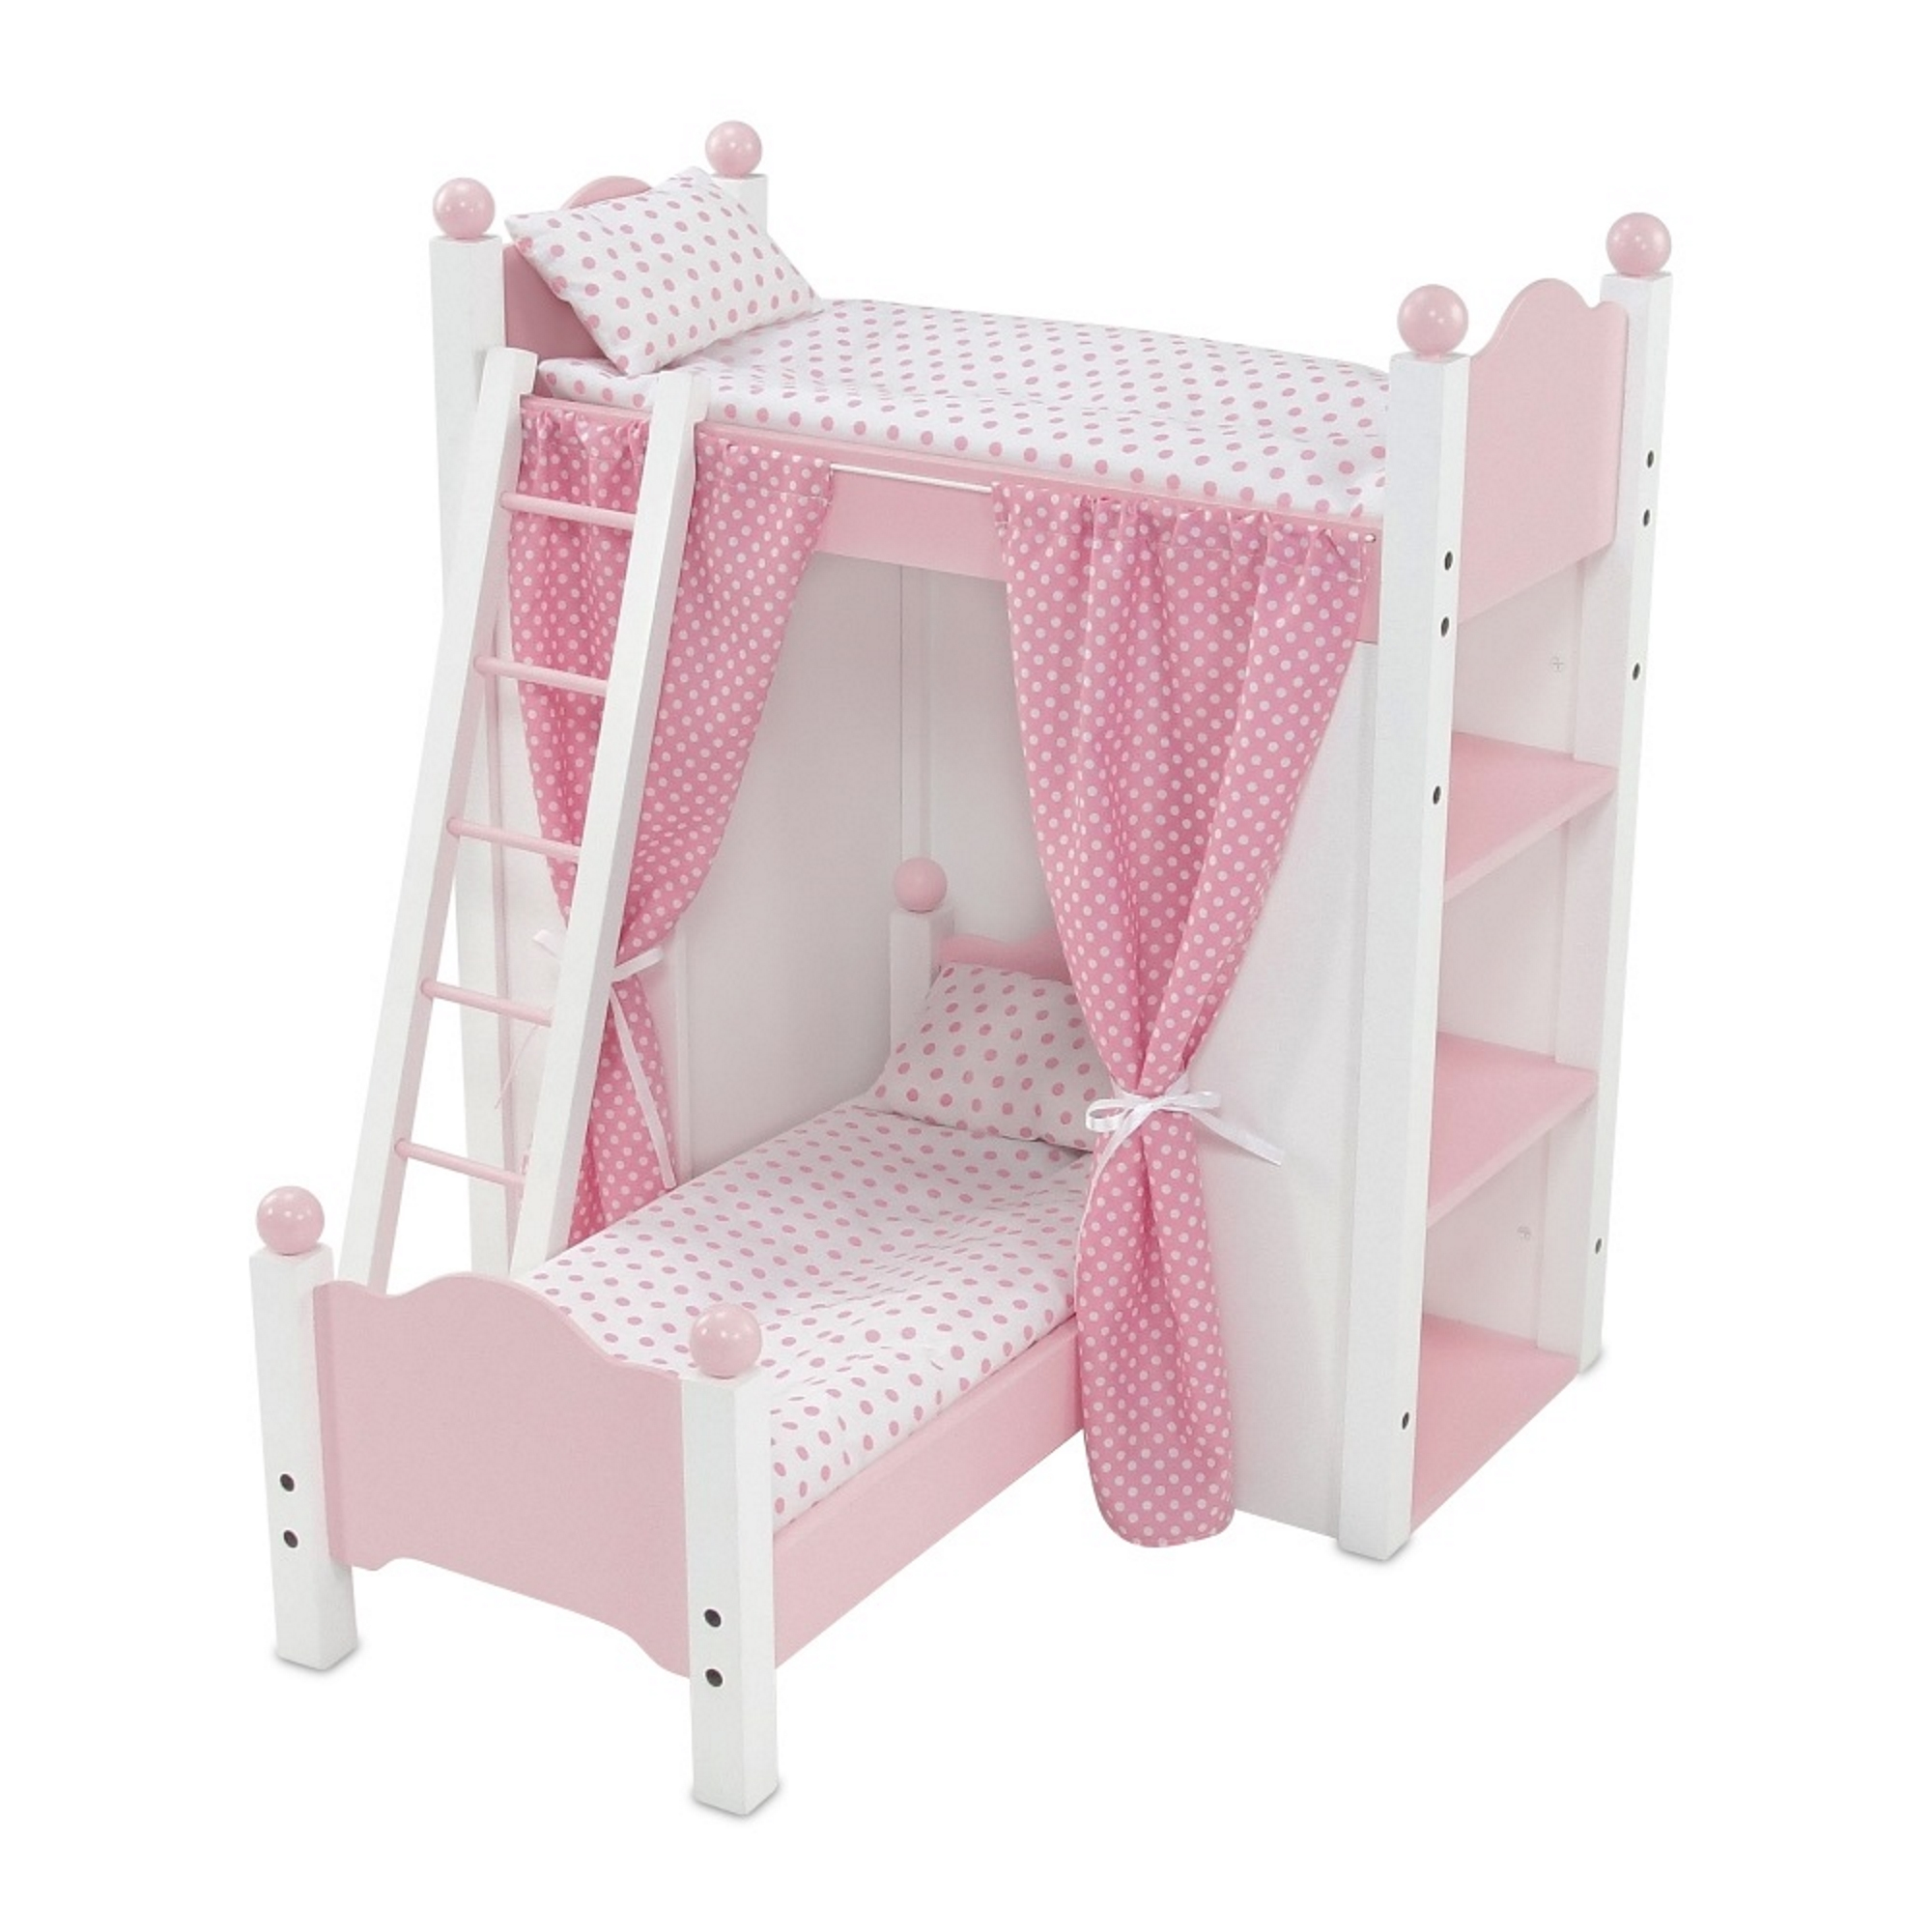 18 Inch Doll Furniture | White Loft Bunk Bed With Shelving Units And Angled  Single Bed, Includes Ladder, Lovely Pink And White Polka Dot Bedding And ...